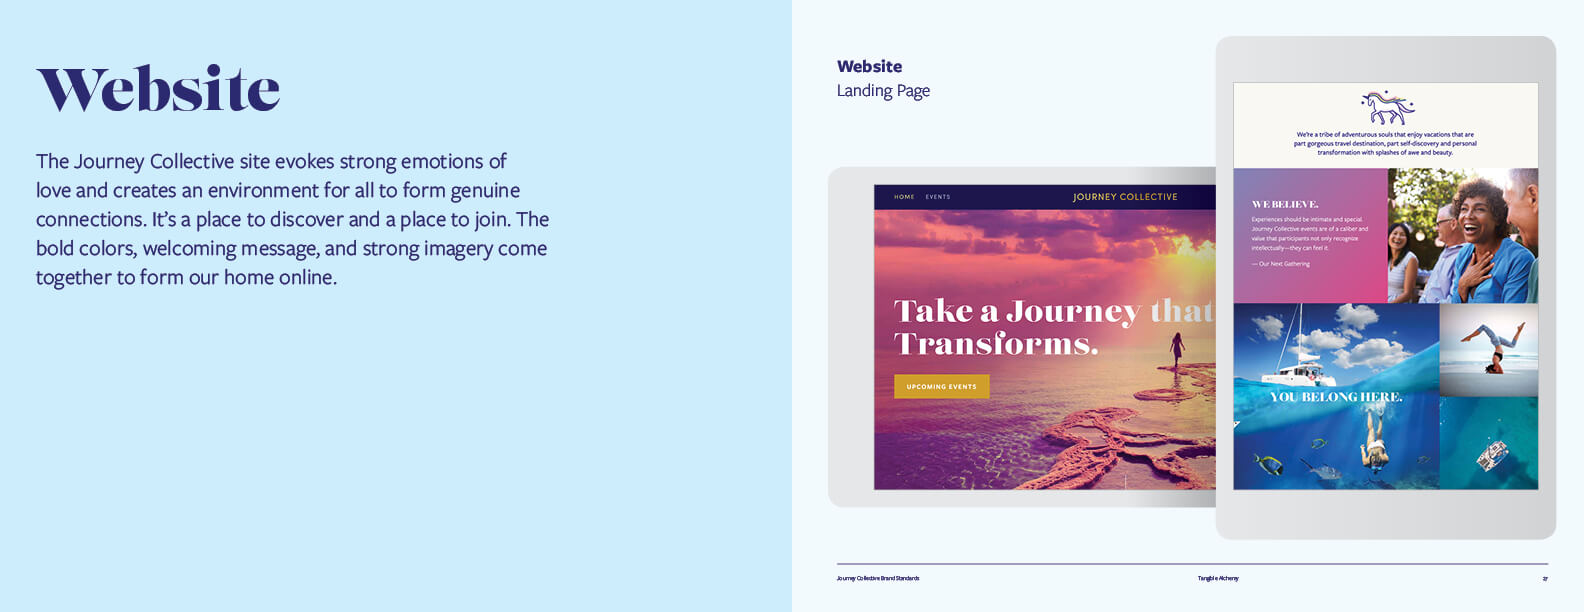 Journey-Collective-Brand-Guidelines14.jpg